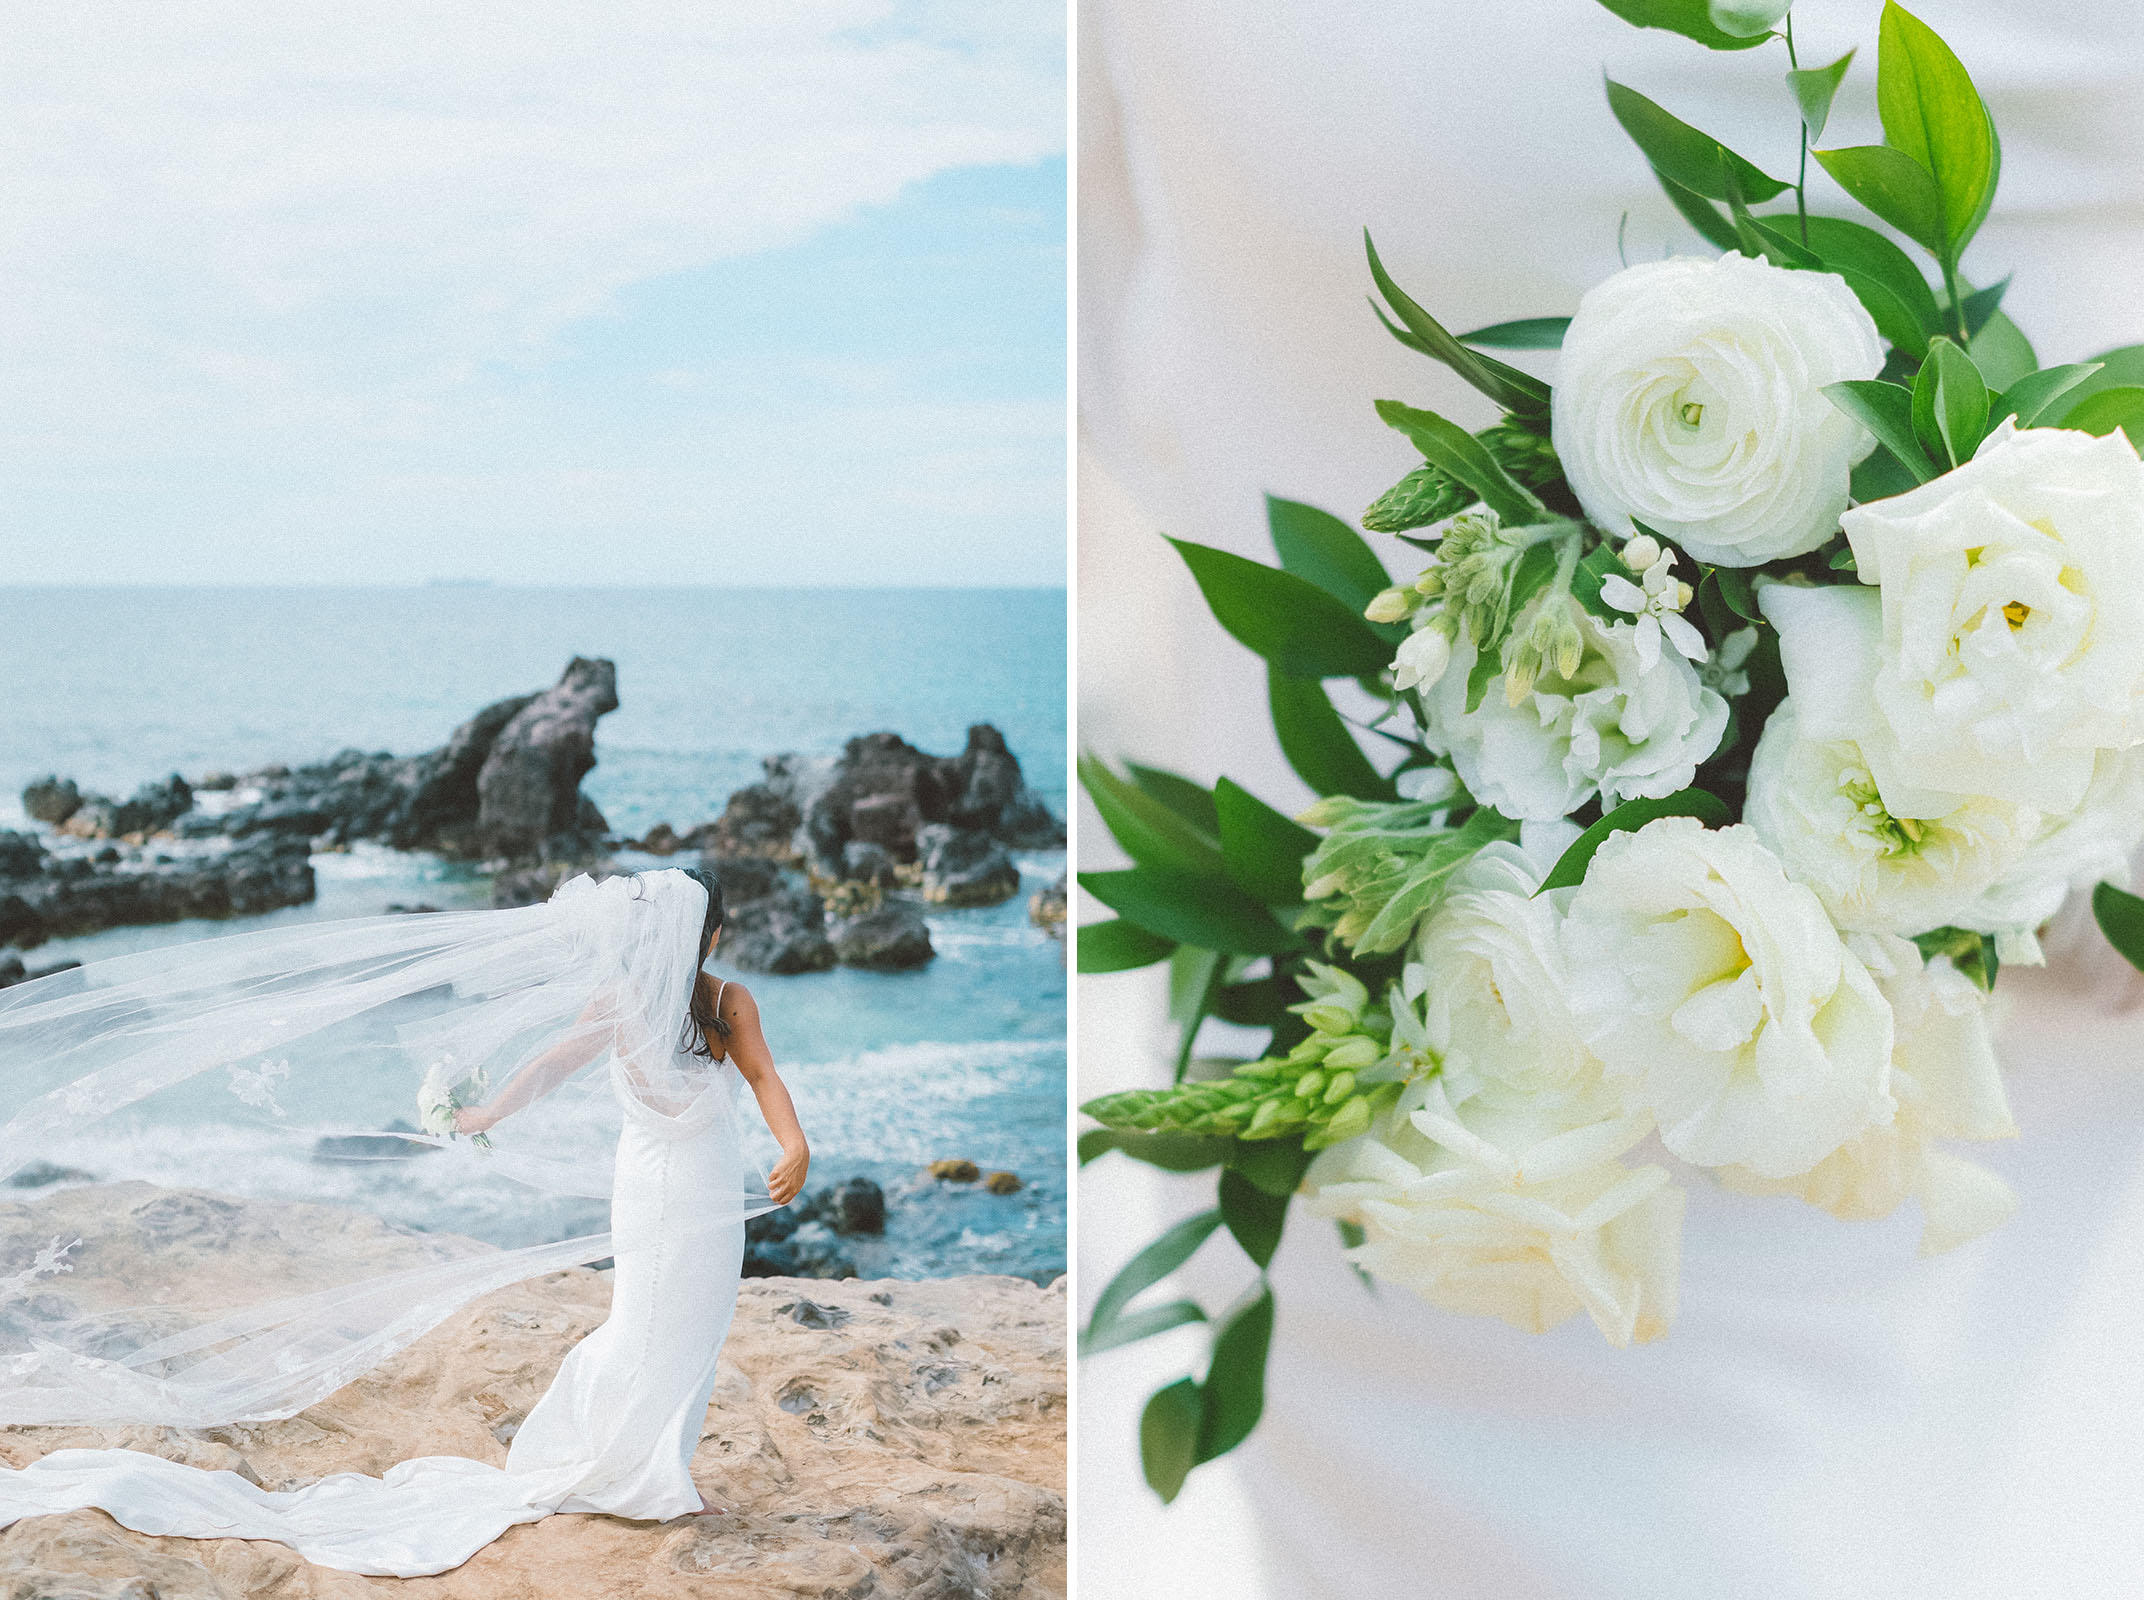 Haiku Mill Luxe Maui Wedding20190625_0184 copy.jpg